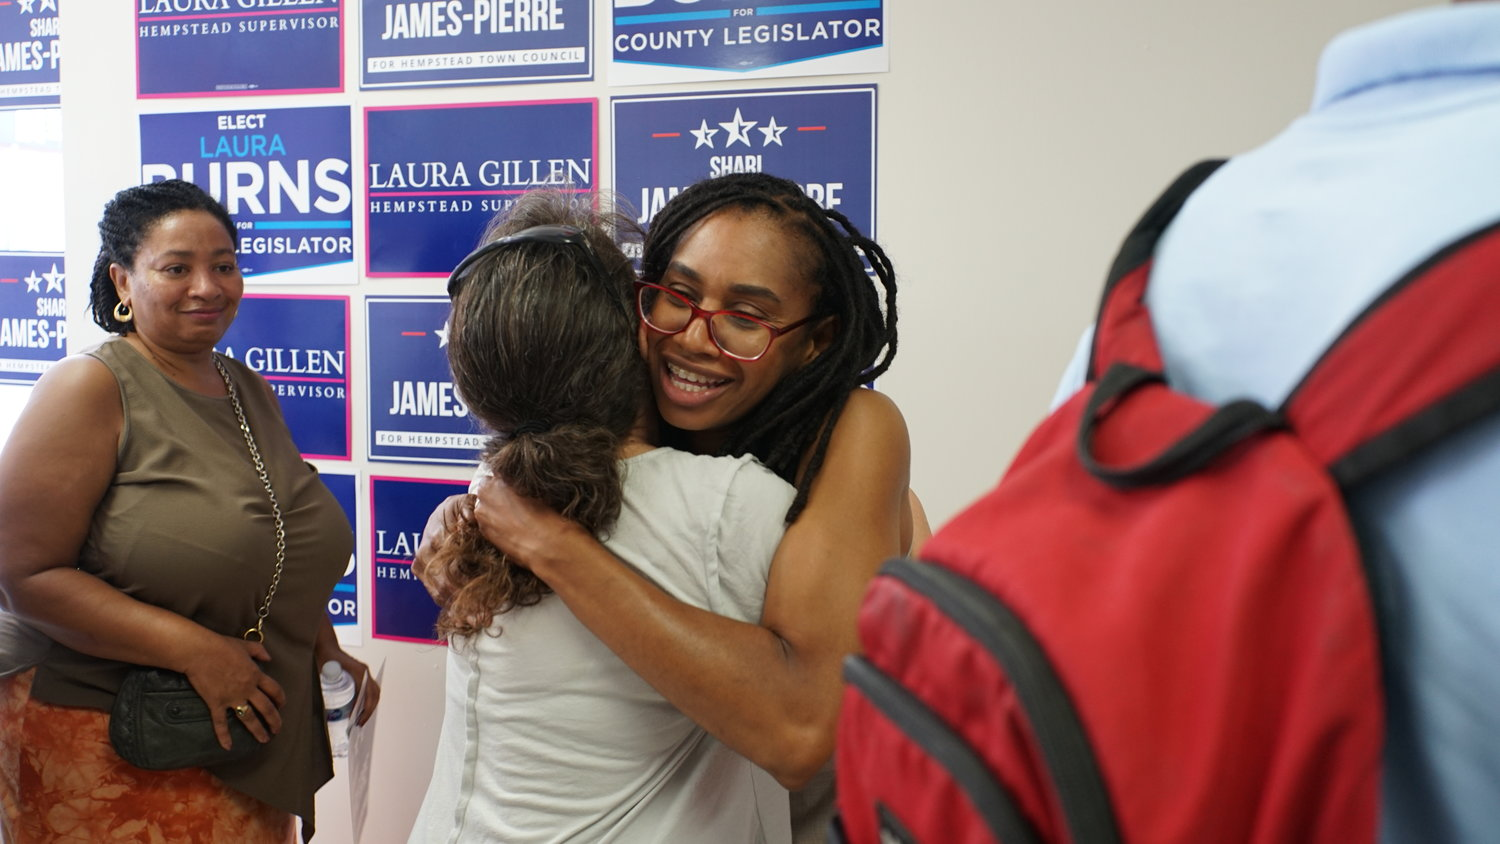 Valley Streamer Shari James hugged a supporter at her campaign kickoff on Saturday. She will be running in November for the Town of Hempstead 3rd Council District against Bruce Blakeman.